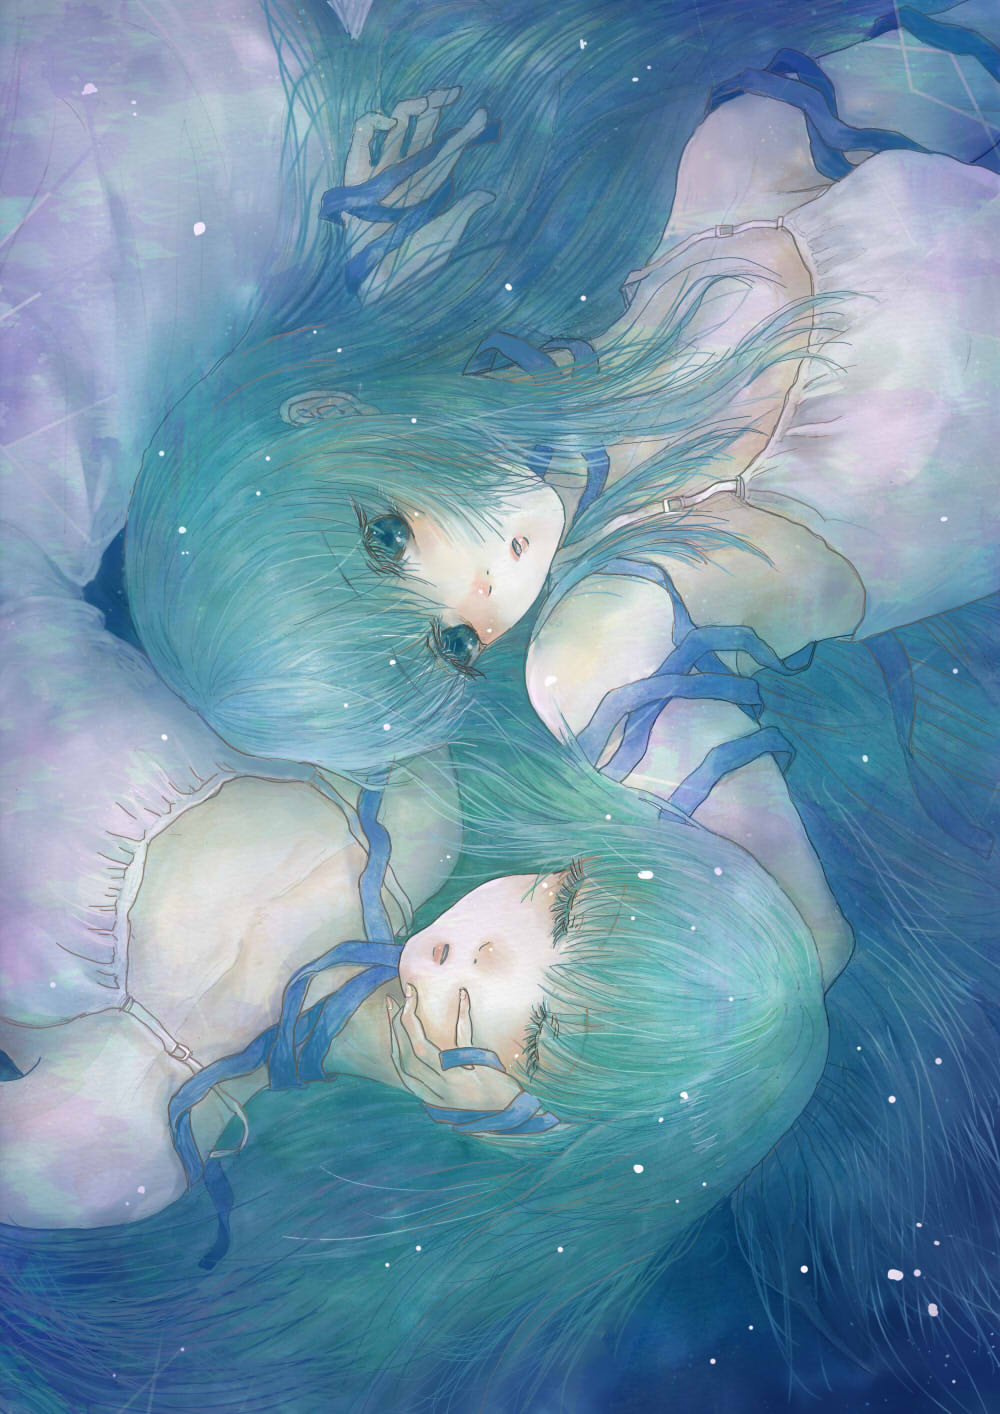 2girls aqua aqua_eyes aqua_hair armpits bangs blunt_bangs blush breasts closed_eyes collarbone commentary dress eyelashes fingernails hand_in_hair hand_on_another's_face highres lips long_hair looking_at_another lying multiple_girls original parted_lips sleeping sleeveless sleeveless_dress small_breasts strap wariko white_dress